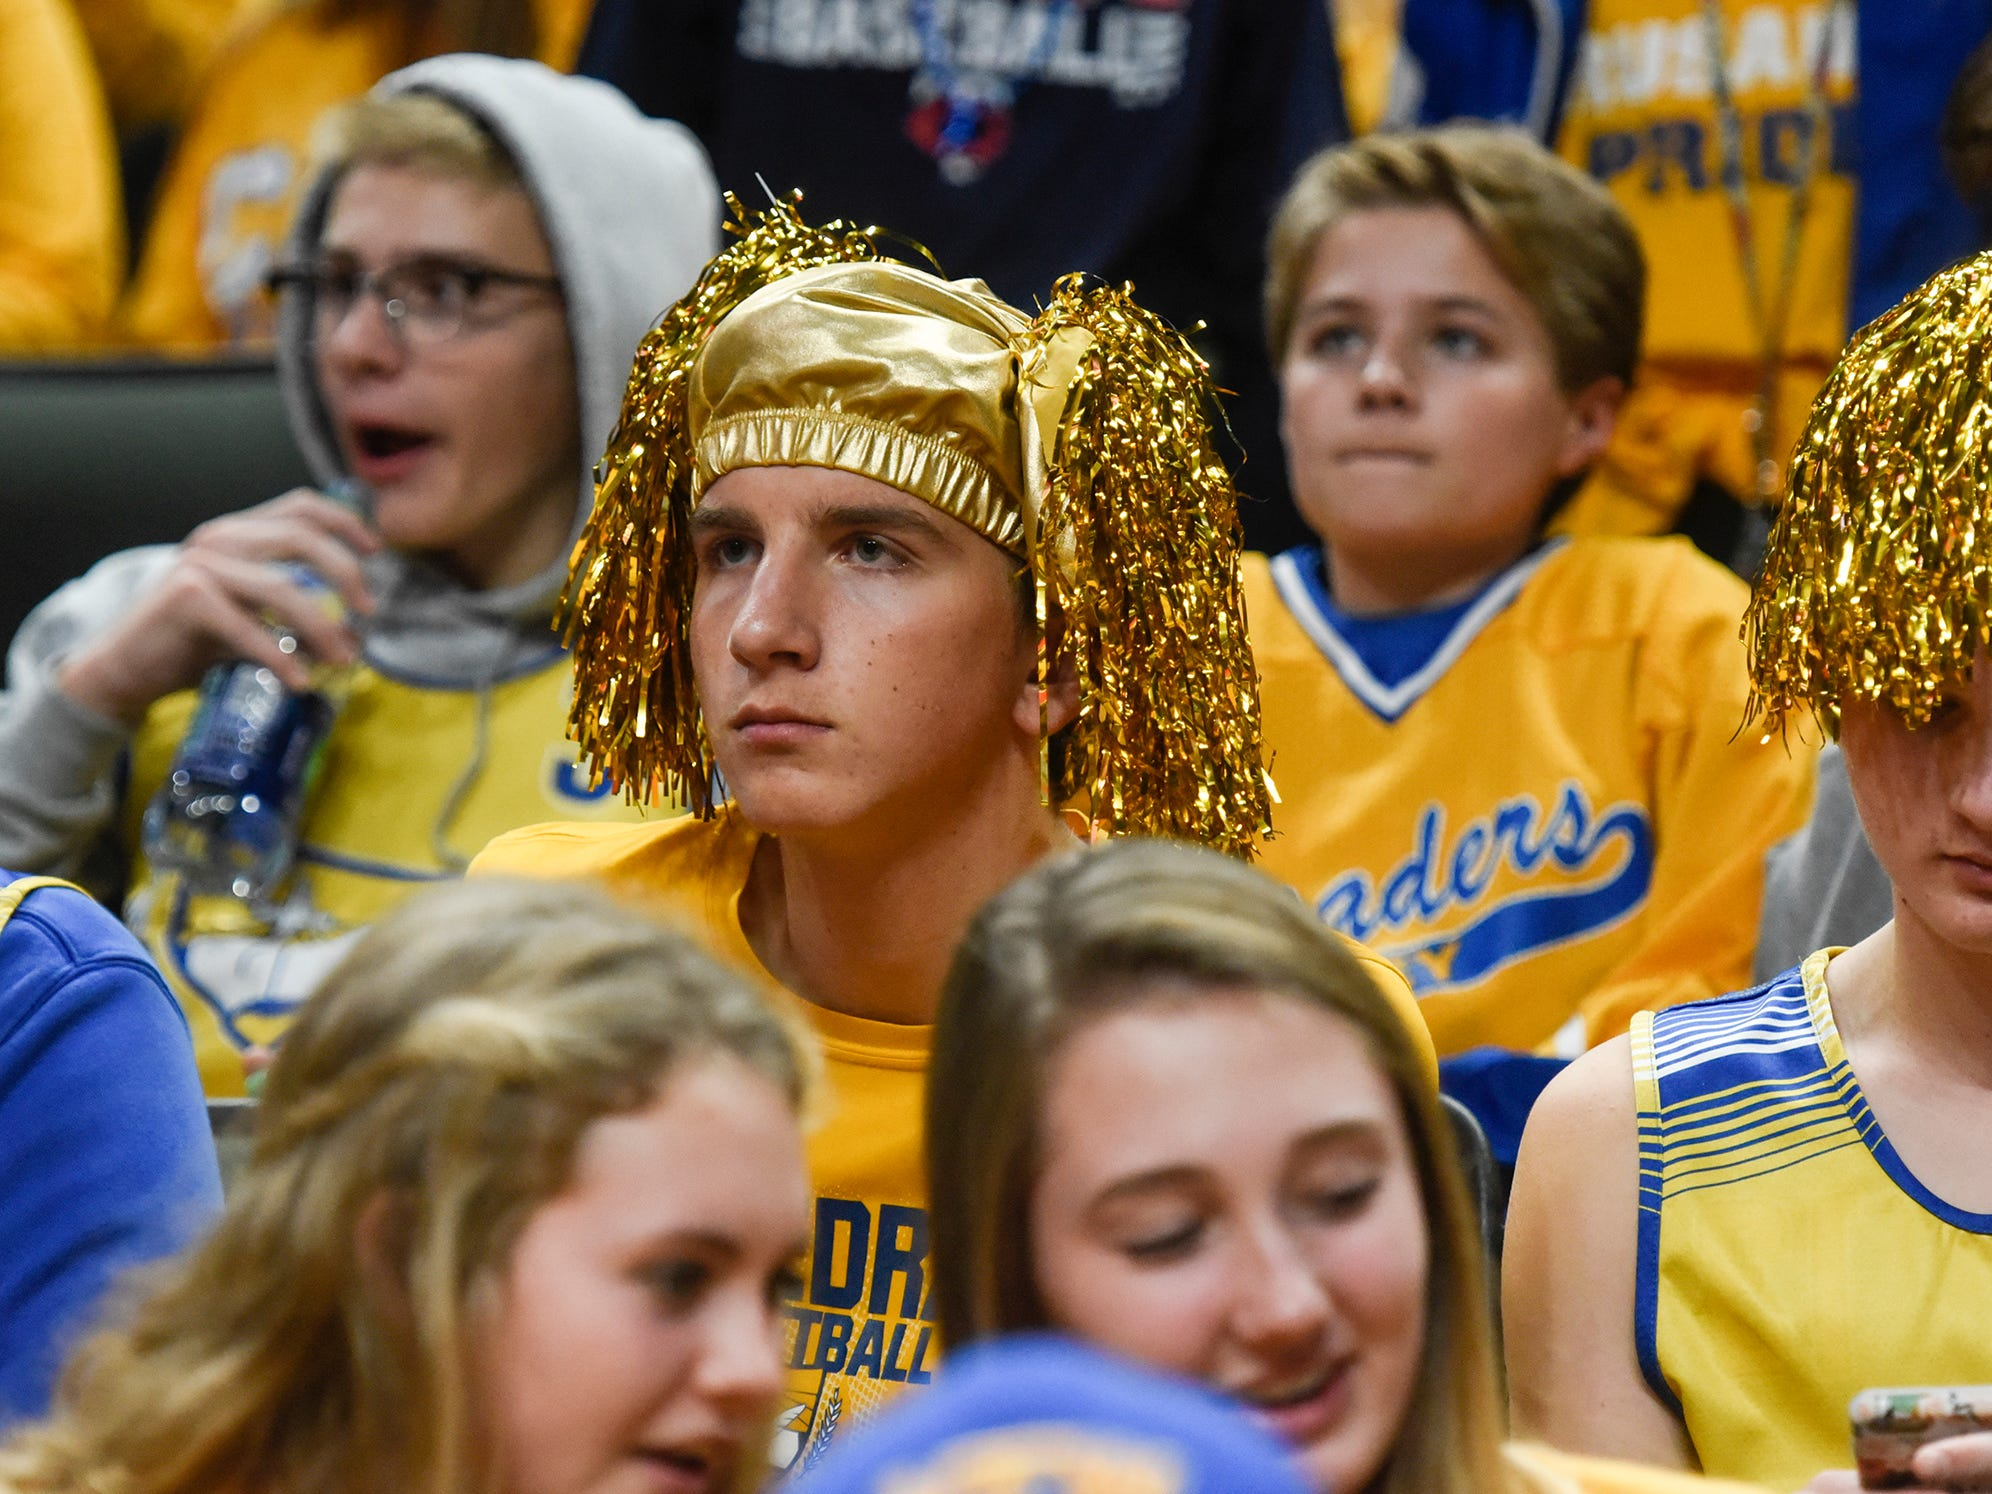 Cathedral fans react to their team's 3-0 loss in the state Class 2A quarterfinals Thursday, Nov. 8, at the Xcel Energy Center in St. Paul.